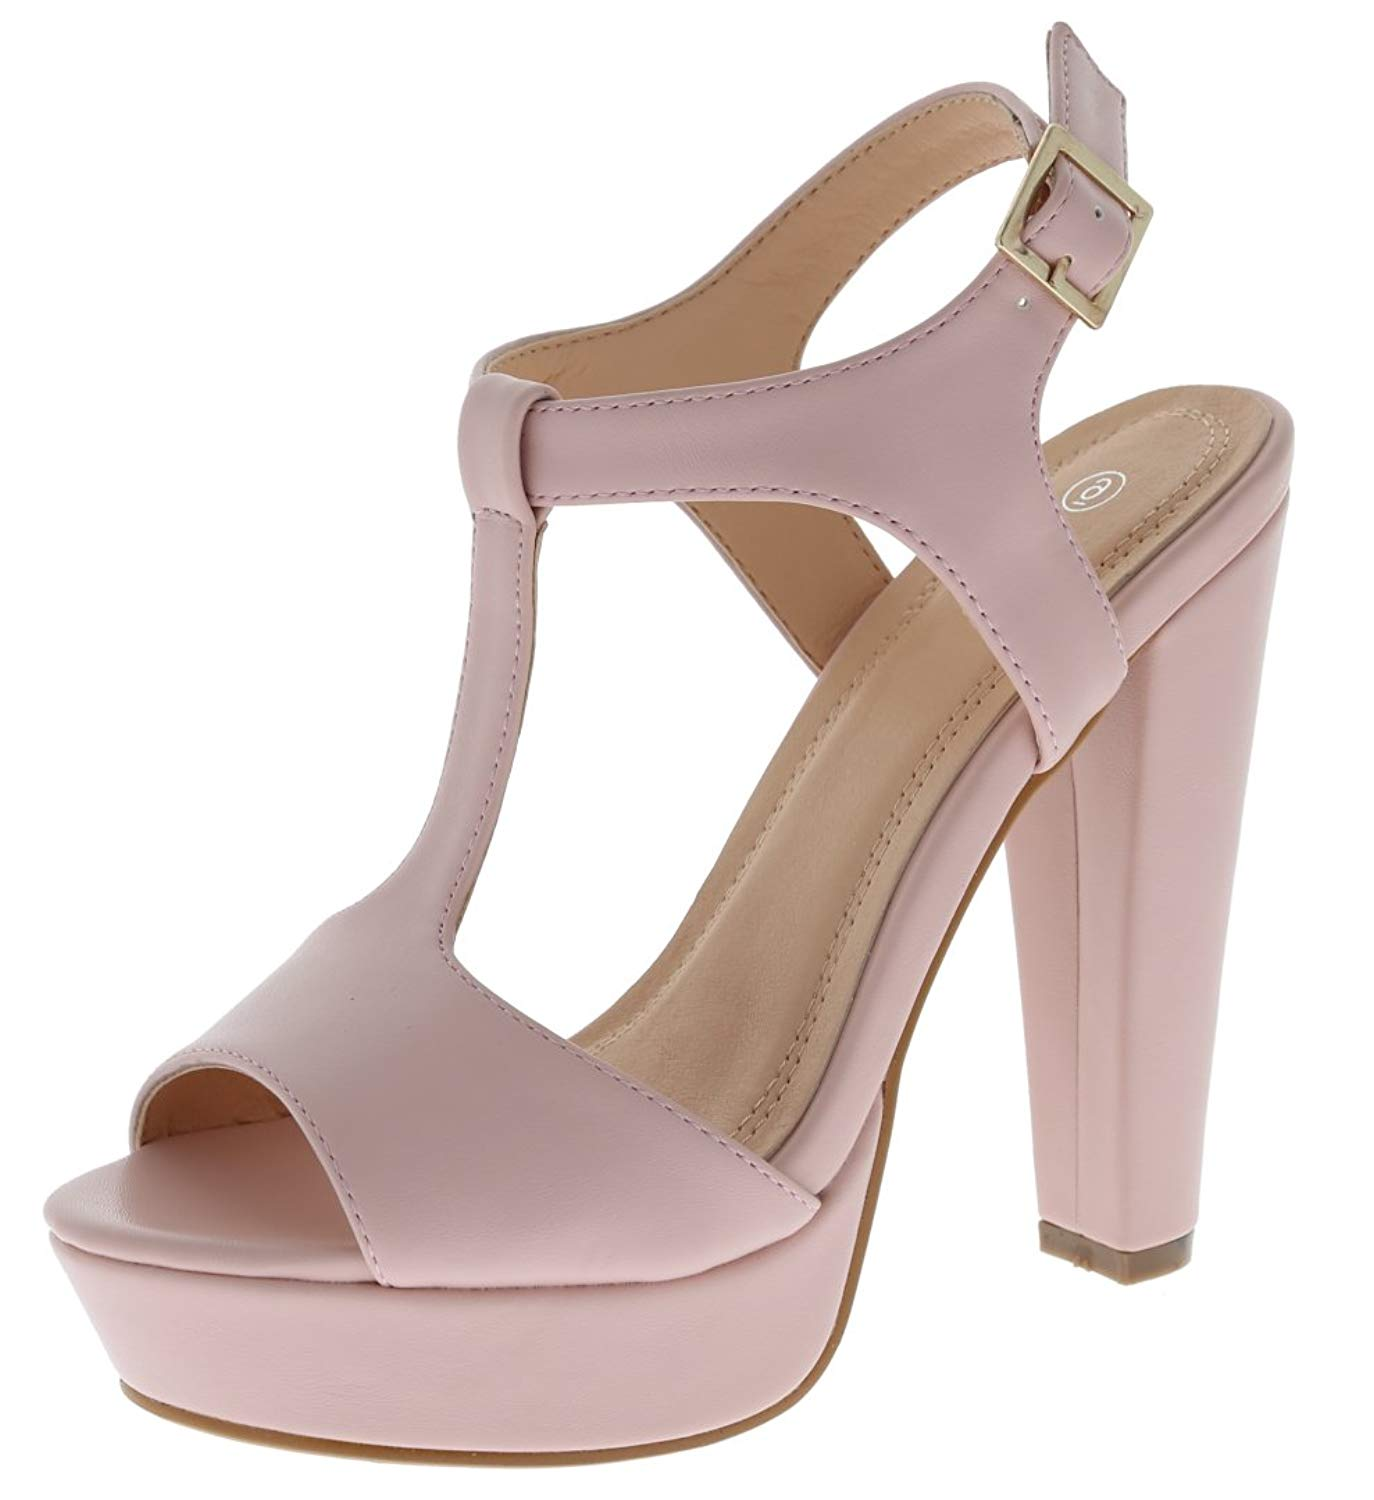 fe6c7555c3f1 Get Quotations · Cambridge Select Women s Open Toe T-Strap Buckled Ankle  Strap Chunky Platform High Heel Sandal